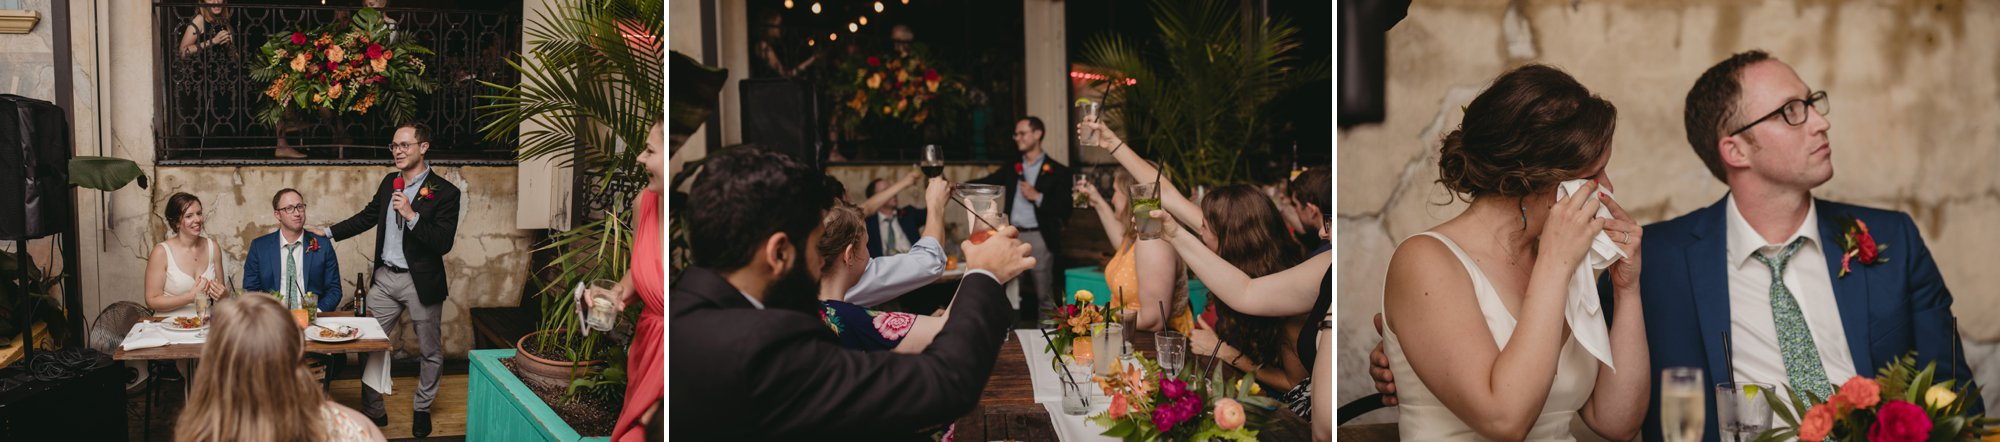 richmond virginia wedding havana 59. Toasts.